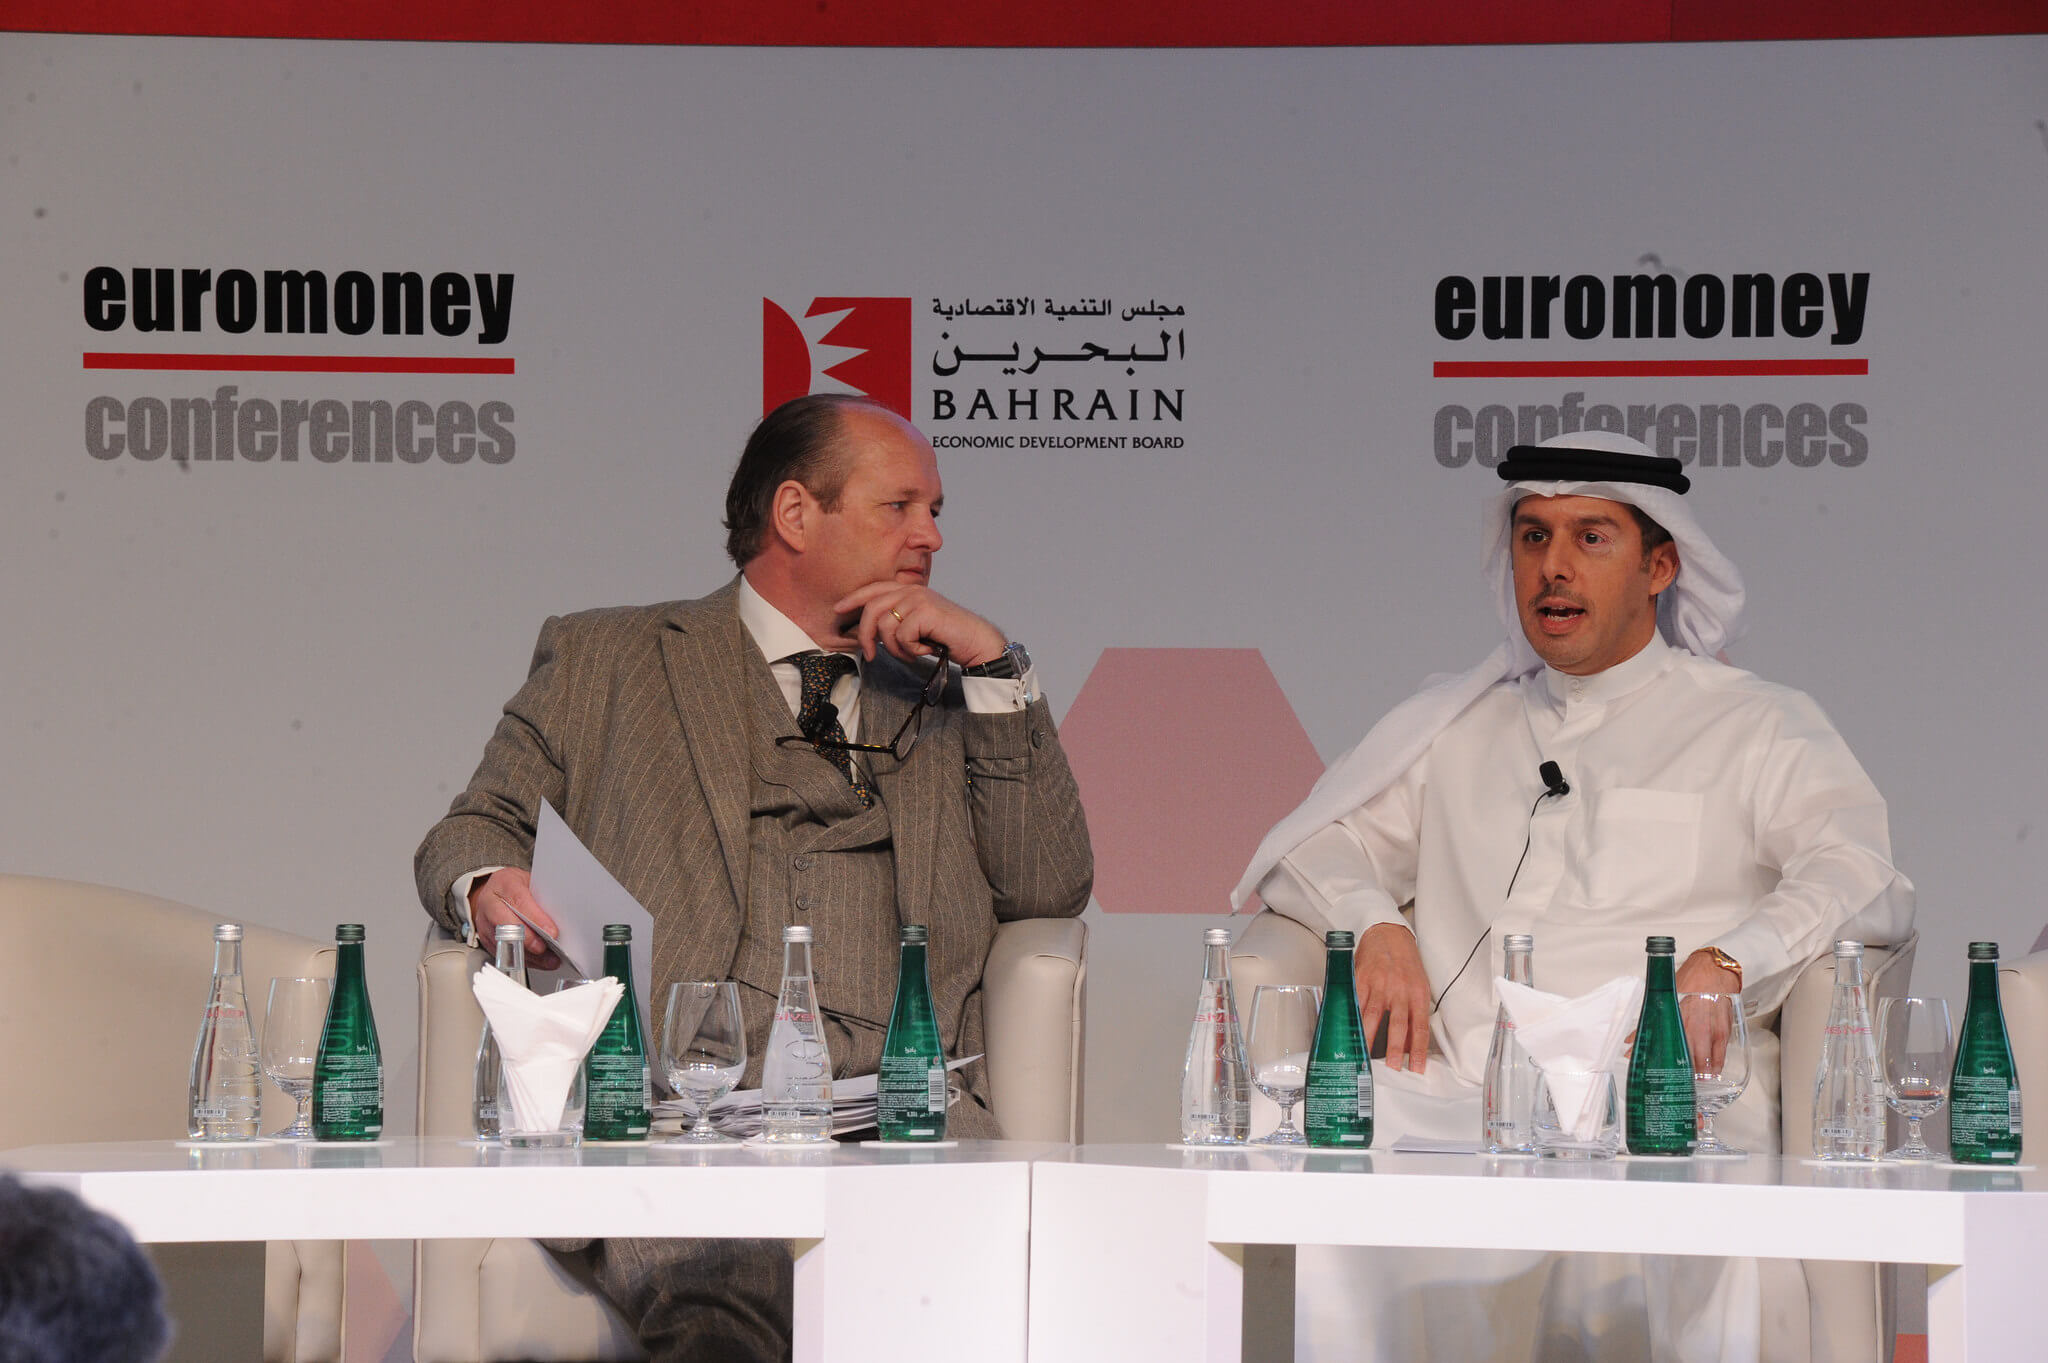 Innovation is key at the GCC Financial Forum